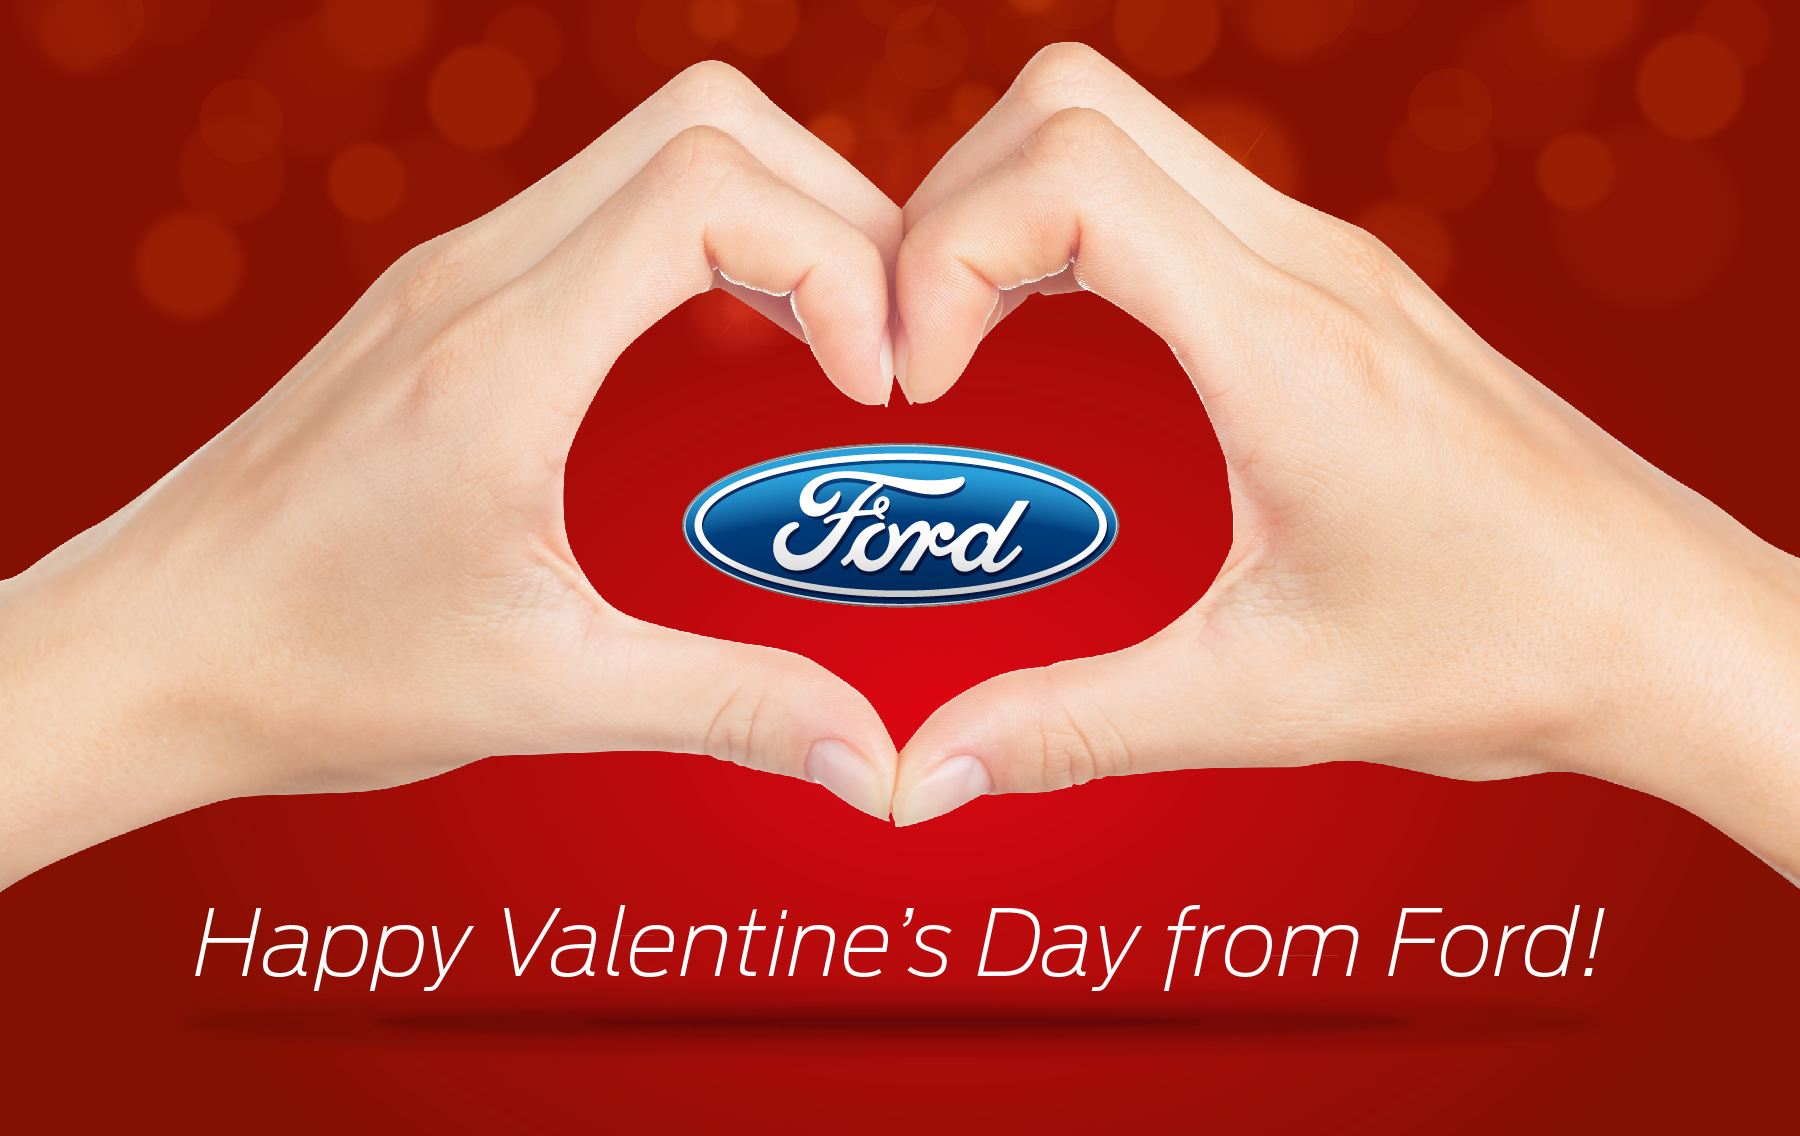 9 Romantic Tips From Ford This Valentine's Day